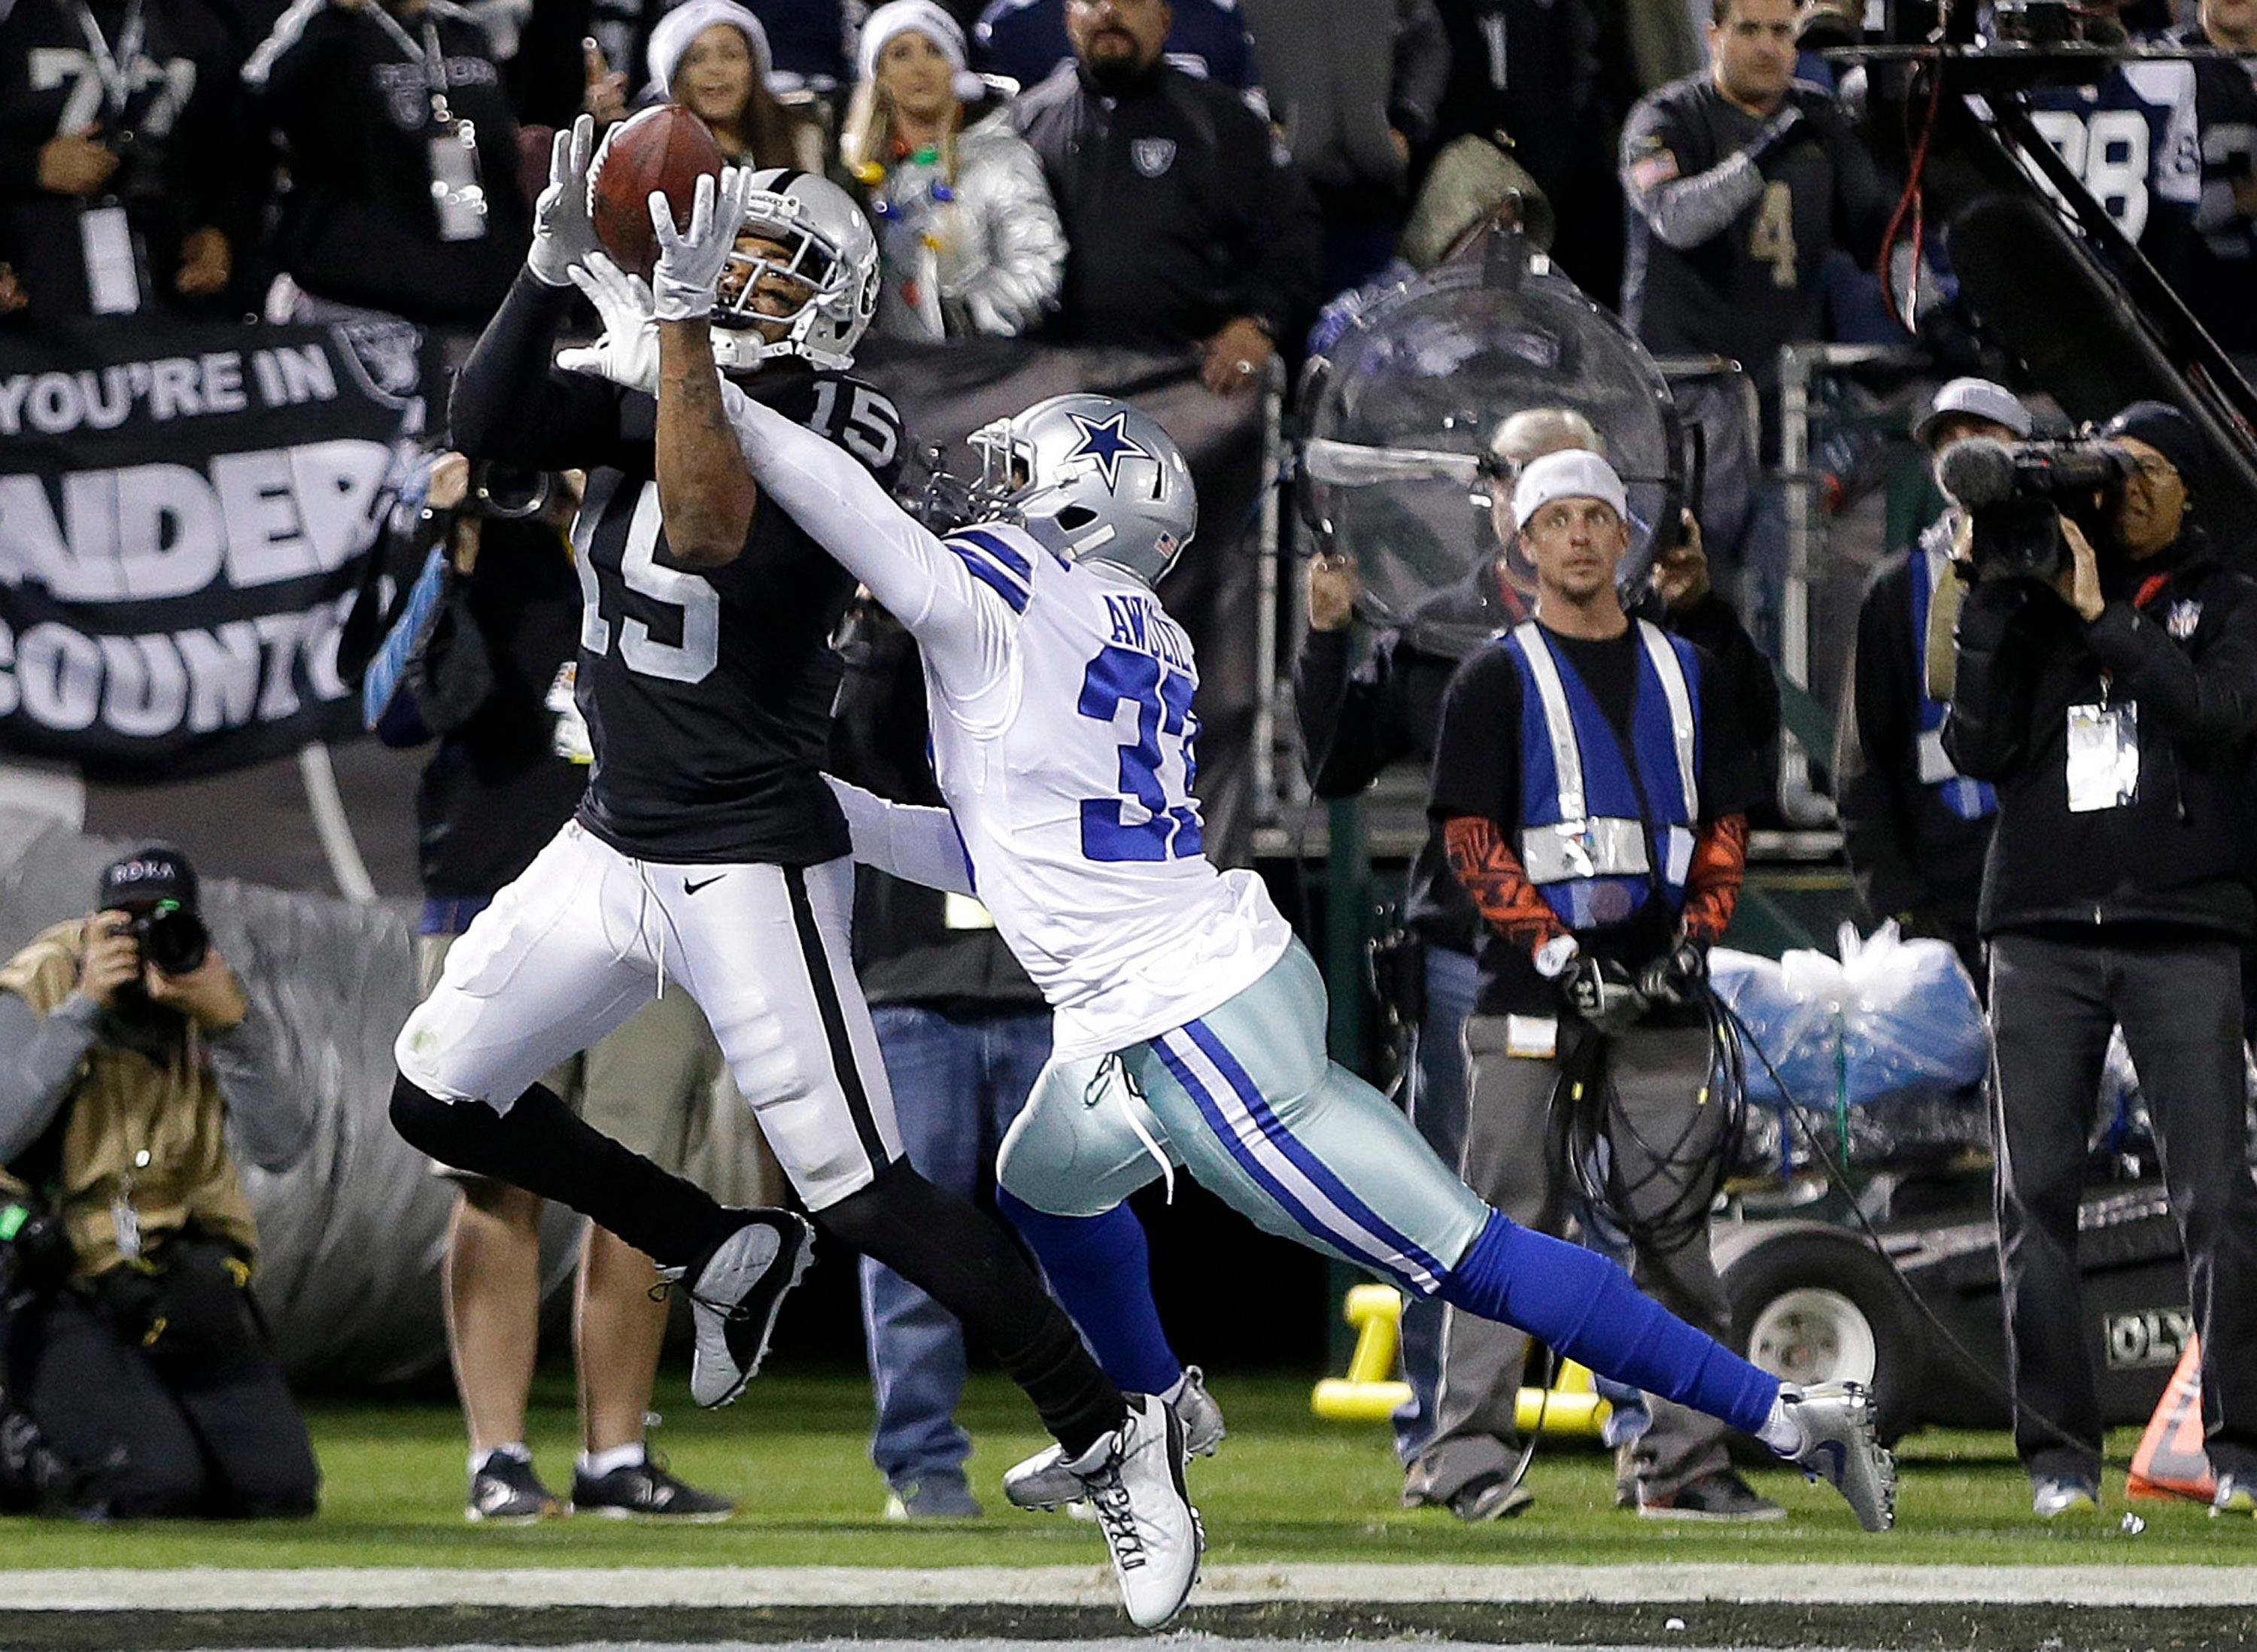 Oakland Raiders wide receiver Michael Crabtree (15) catches a touchdown pass in front of Dallas Cowboys cornerback Chidobe Awuzie (33) during the second half of an NFL football game in Oakland, Calif., Sunday, Dec. 17, 2017. (AP Photo/Ben Margot)